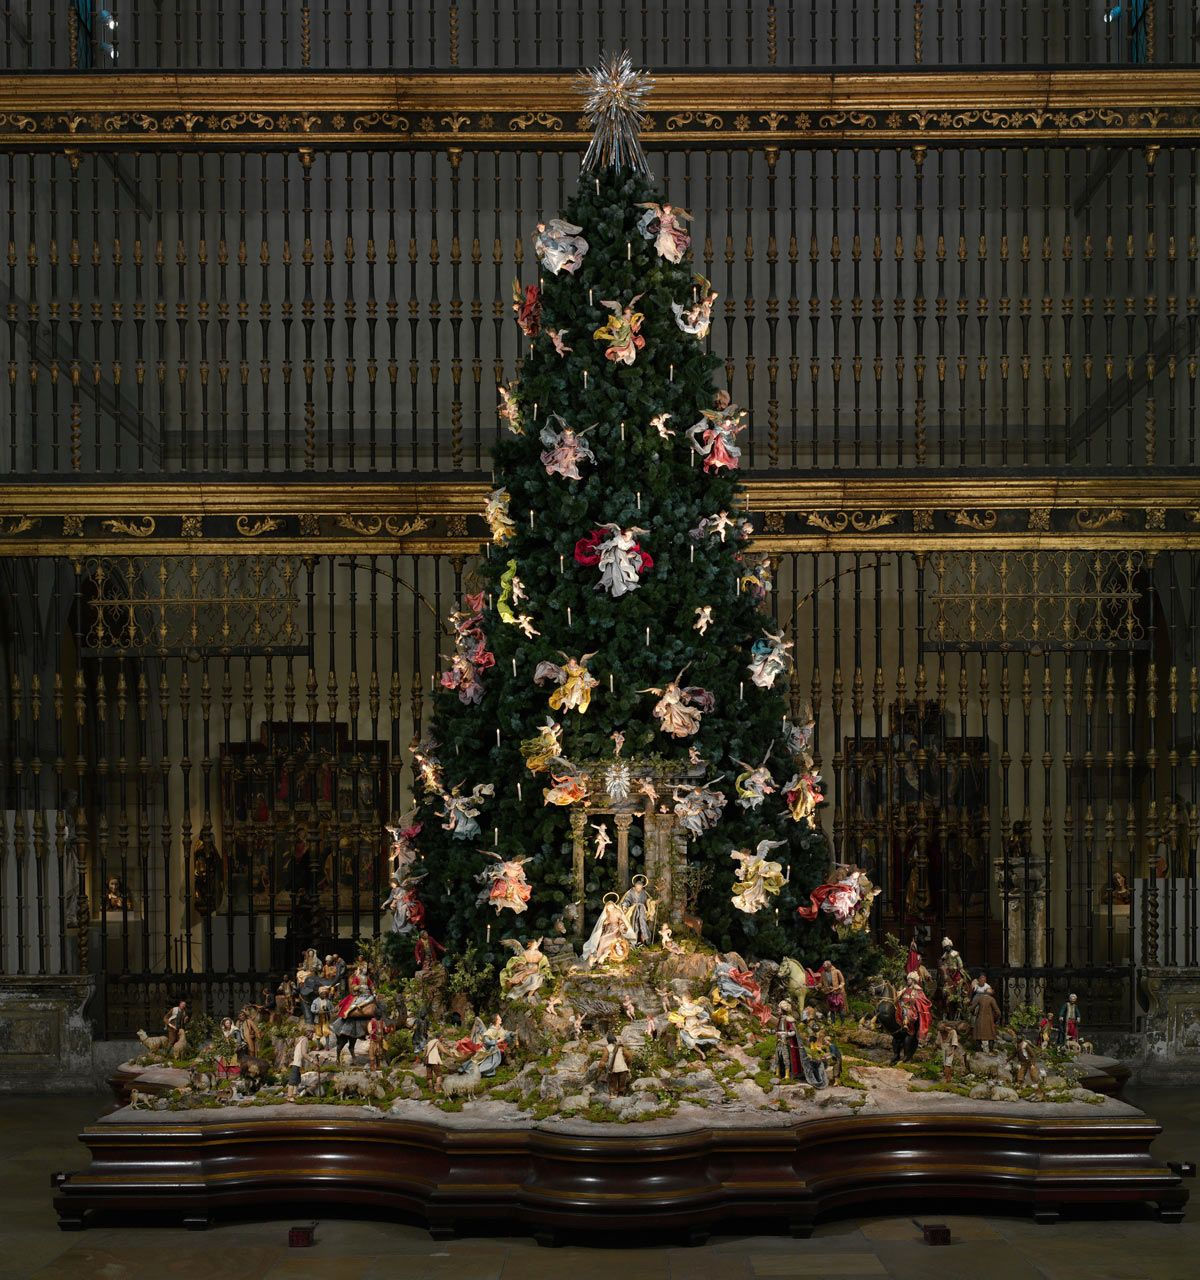 The Met's Christmas Tree and Neapolitan Baroque Crèche